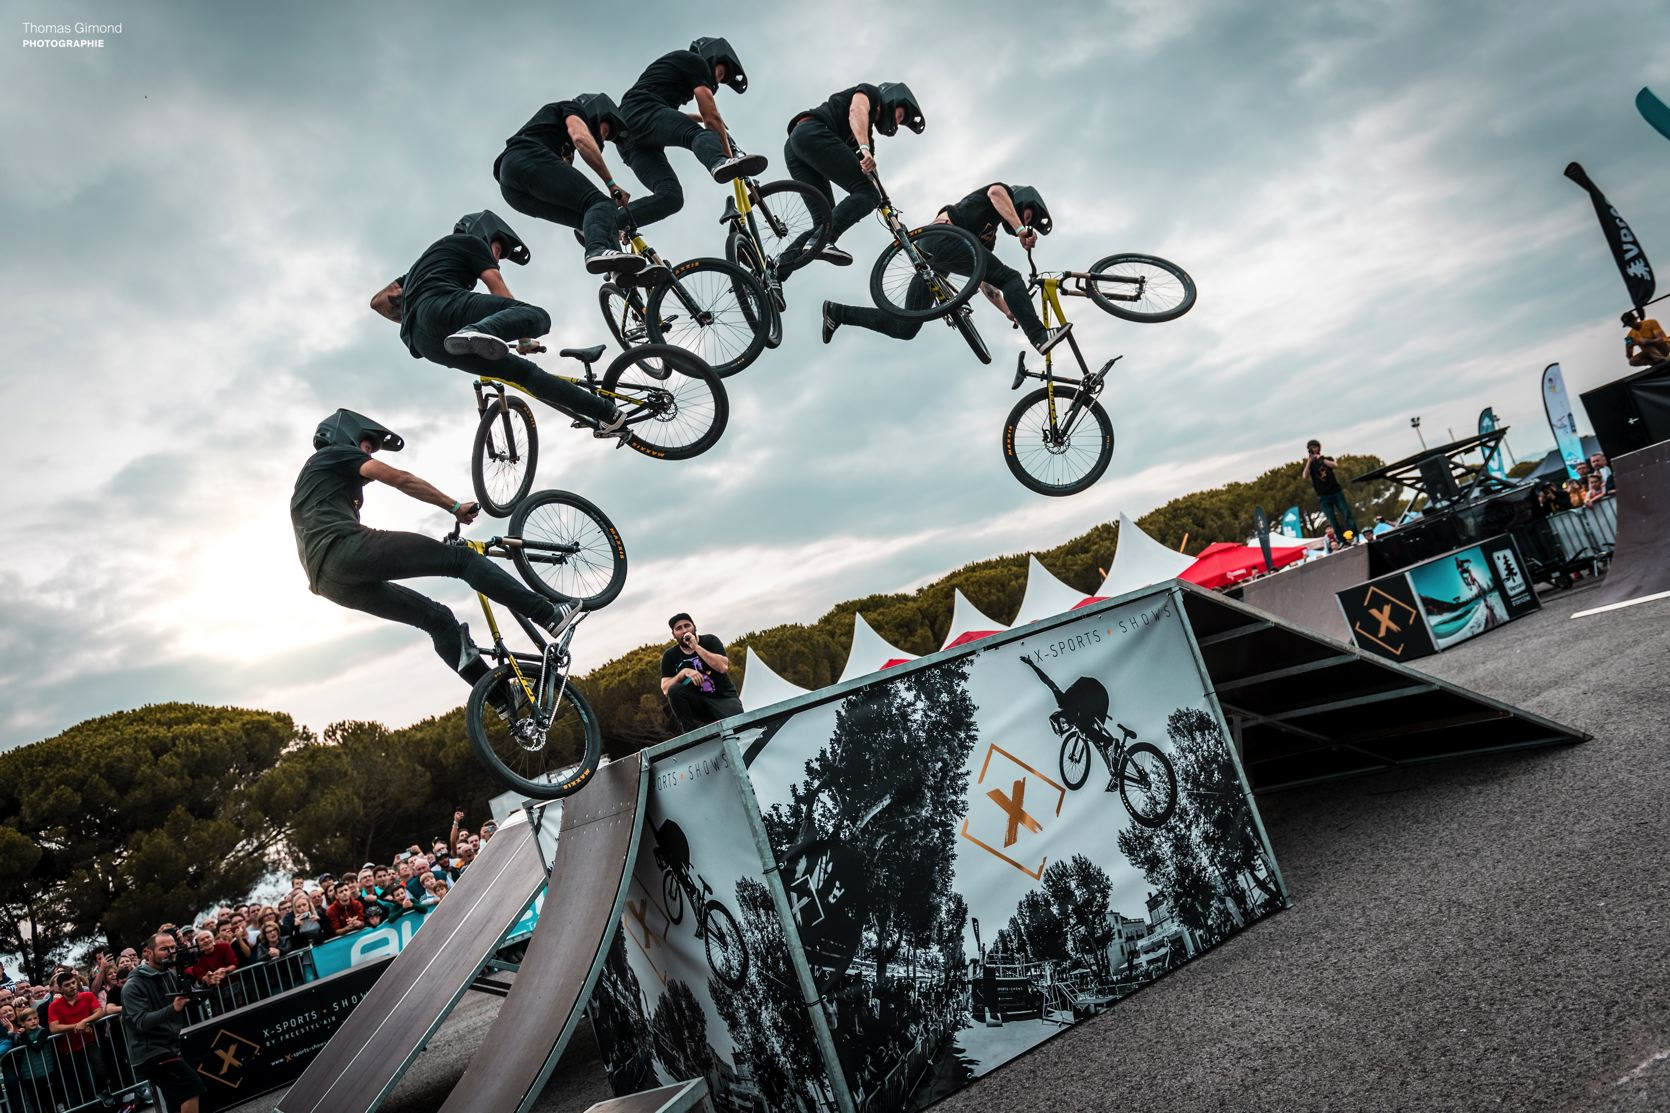 Roc d'azur 2019 shows VTT X-sports